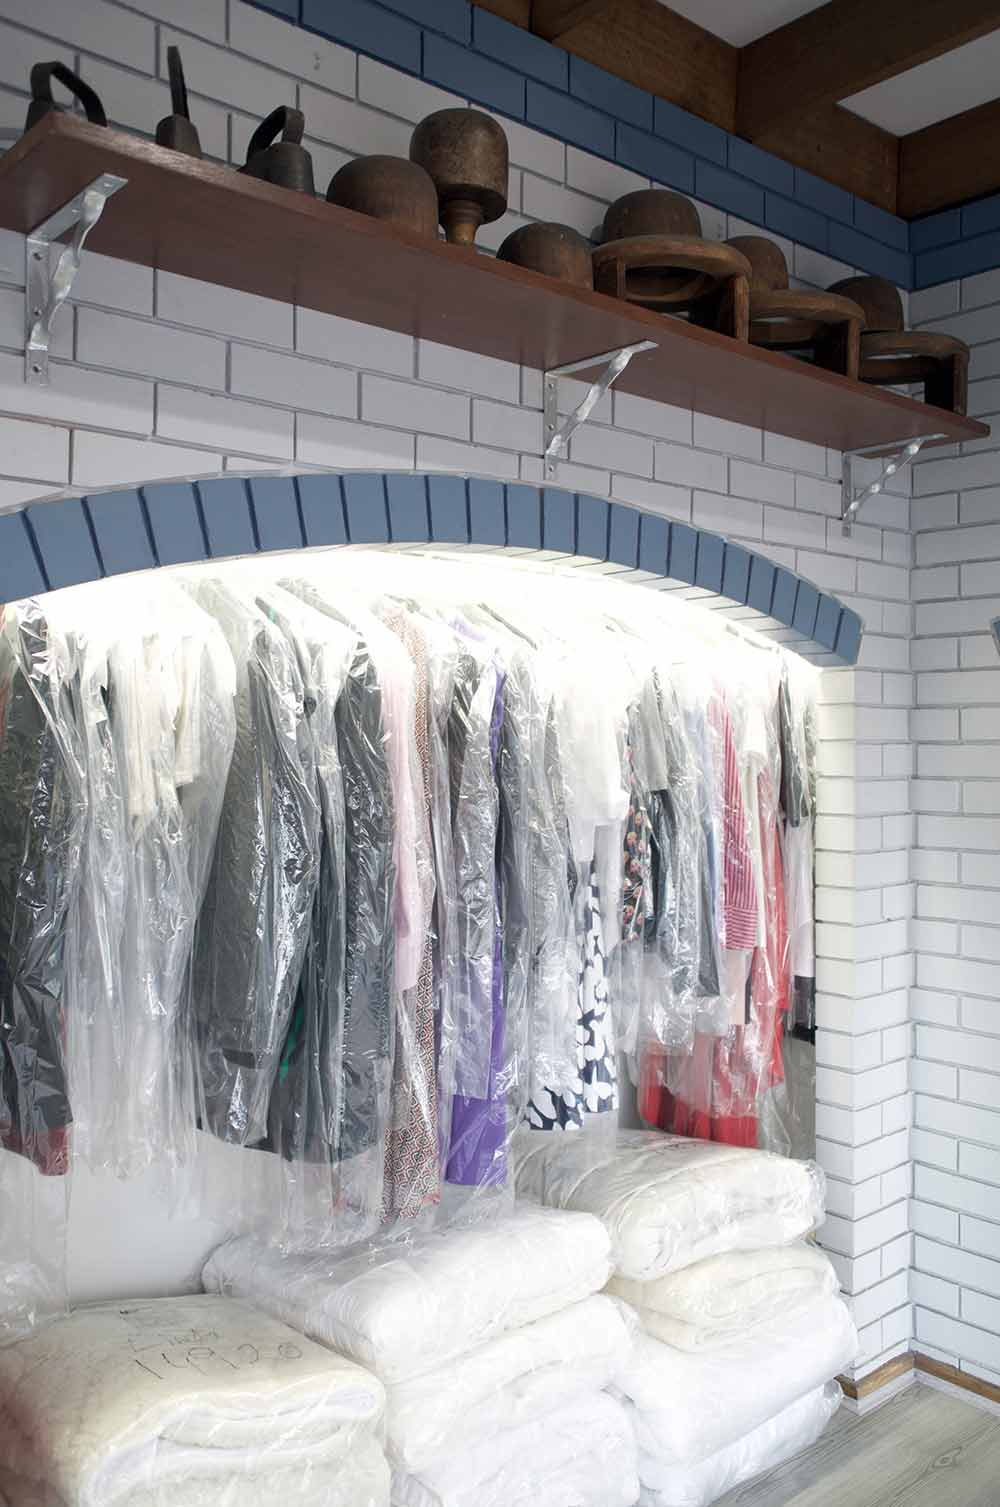 new look drycleaners laundry and linen service cloths kept in plastic covers